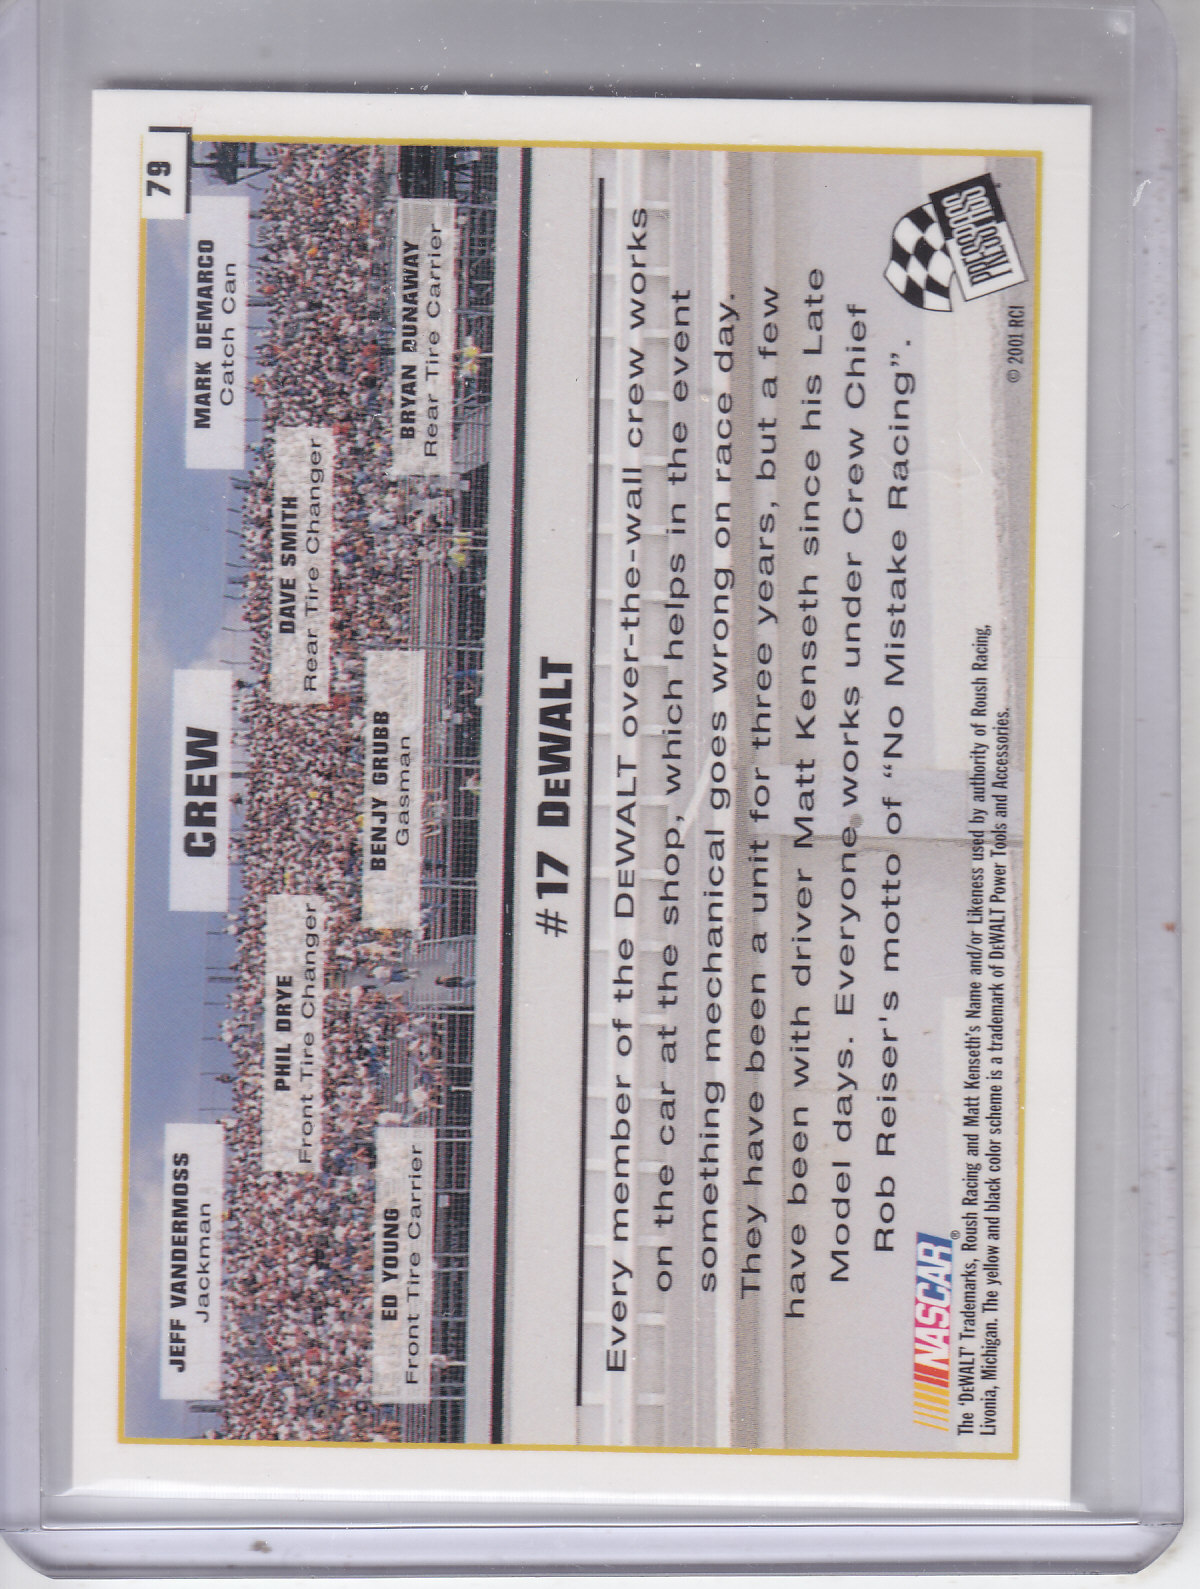 2002 Press Pass #79 Matt Kenseth's Car back image